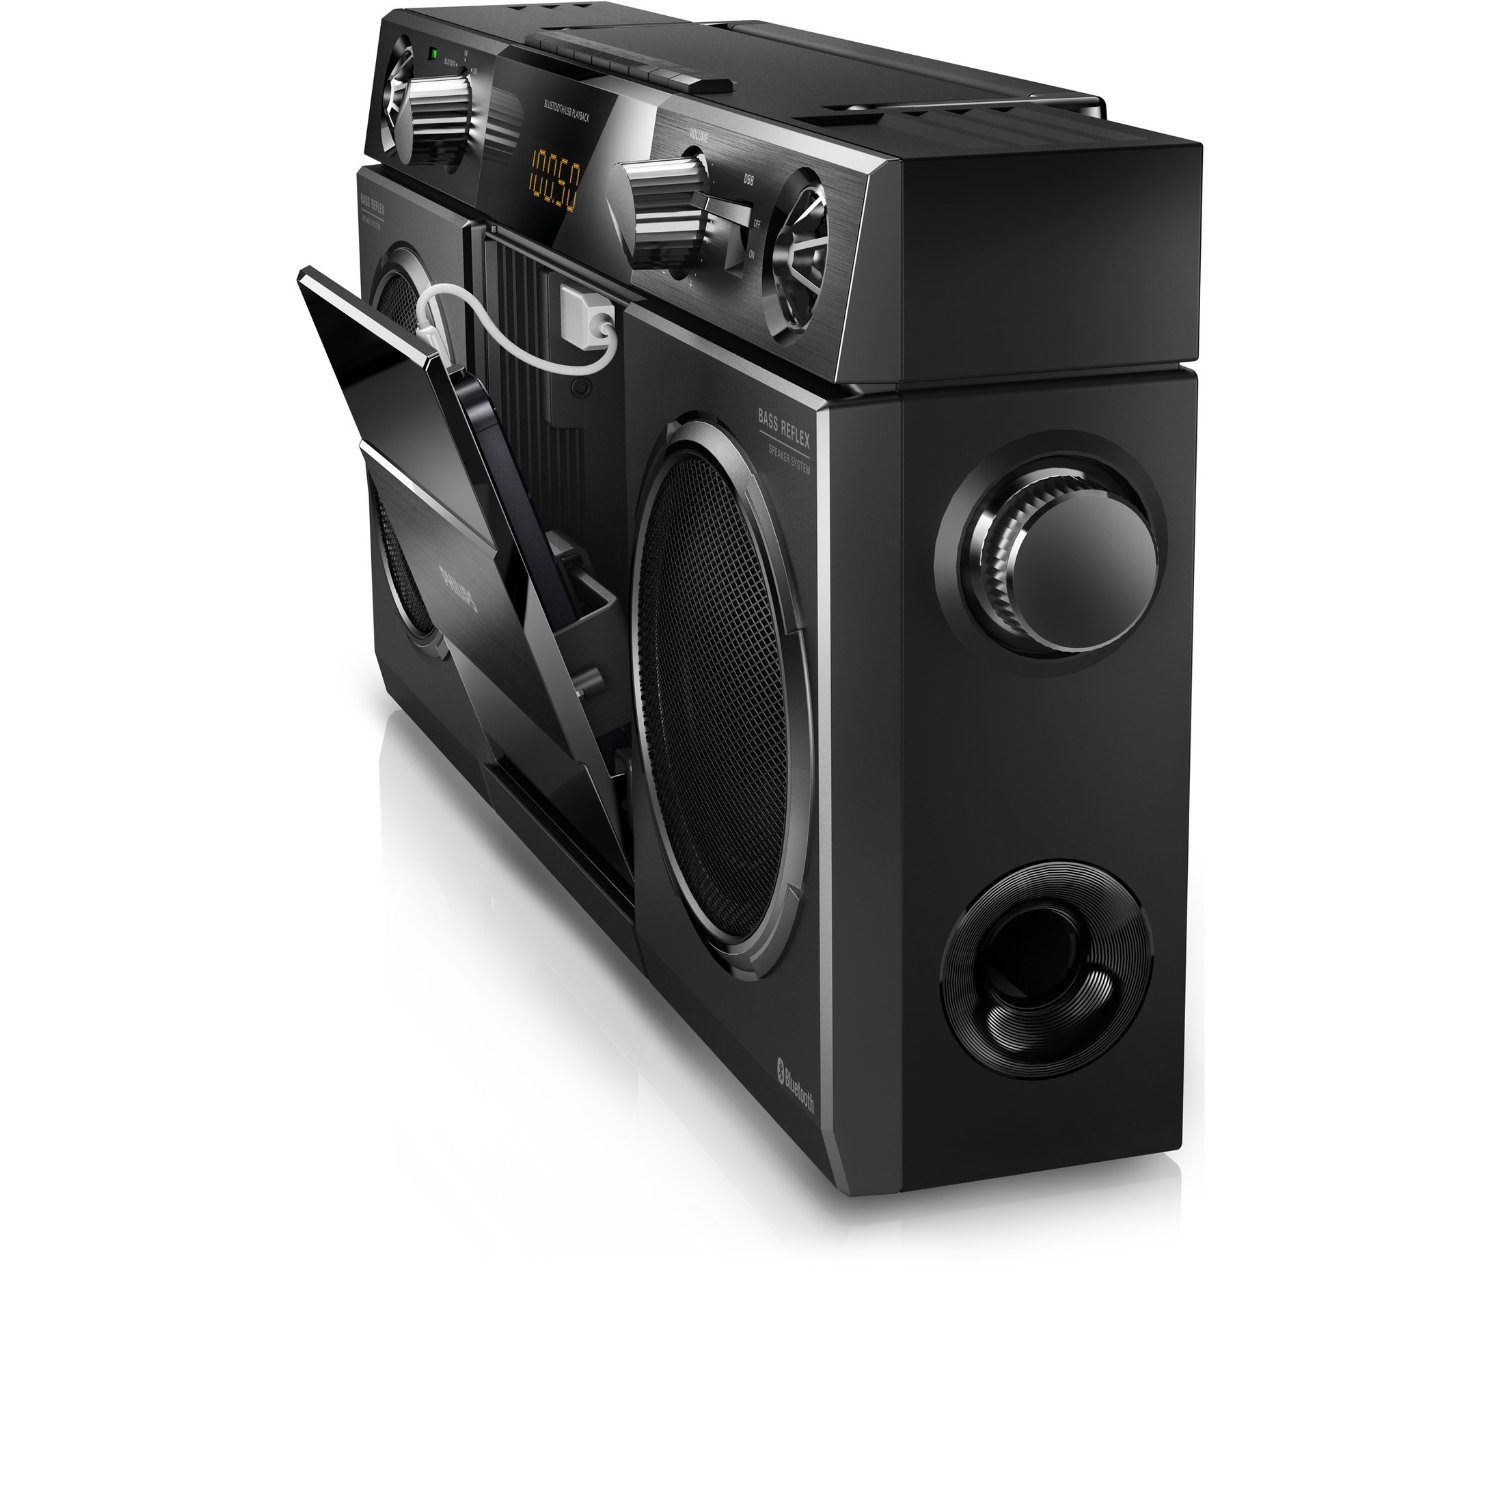 Philips bluetooth boombox retro ghettoblaster radio speaker hi fi sound syste - Phillips ghetto blaster ...